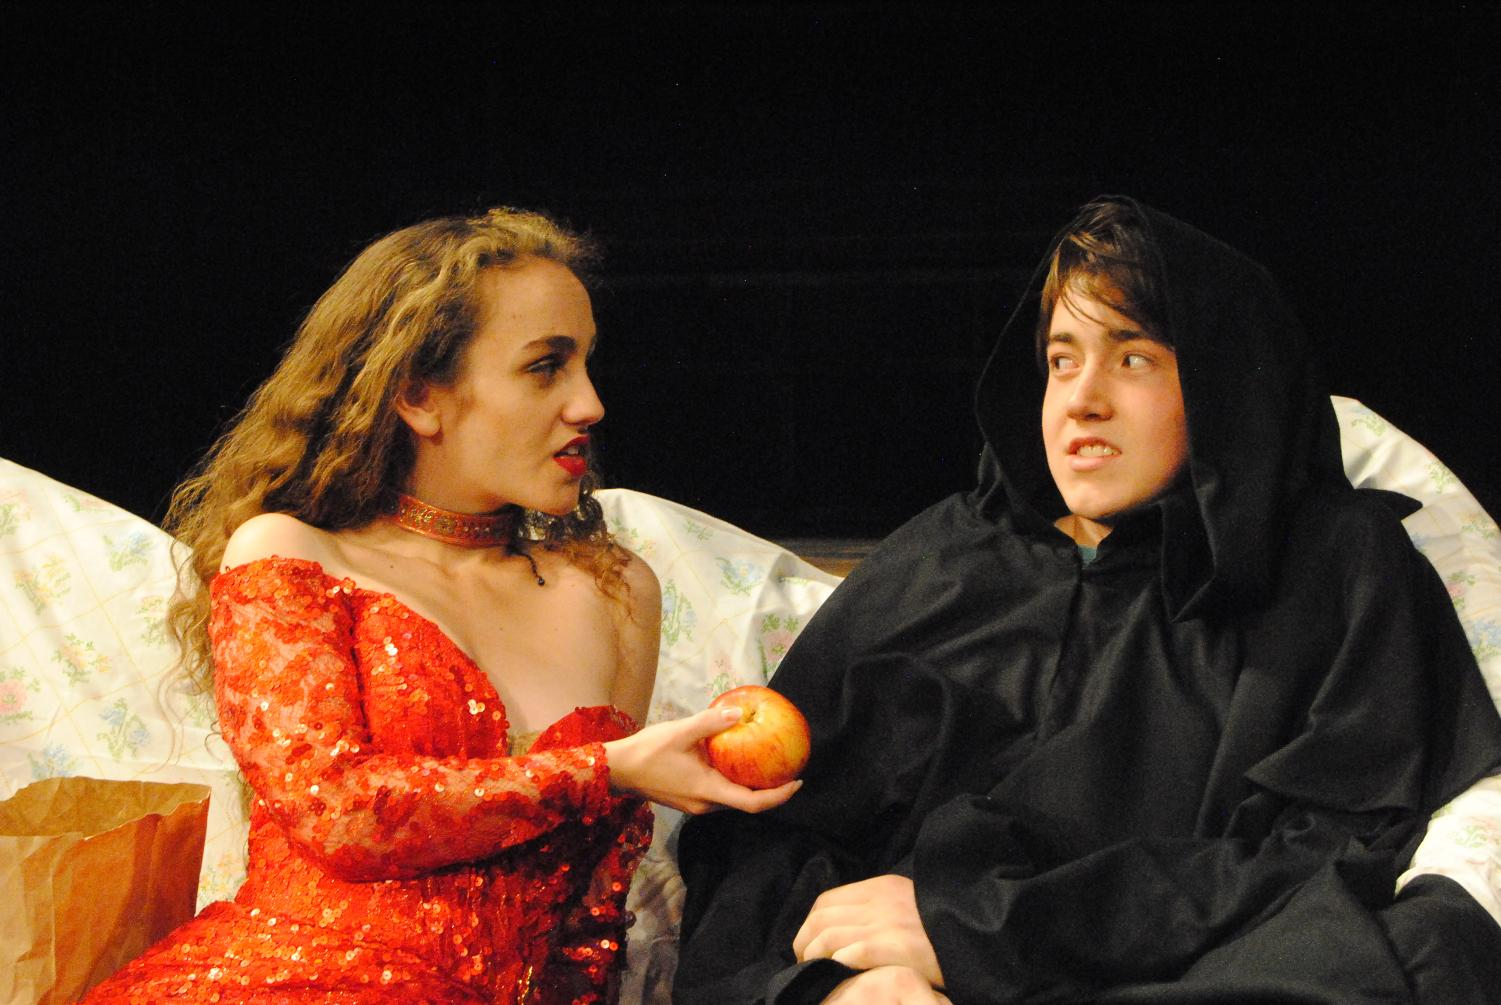 NMSU Theatre Arts production, Inspecting Carol is set to debut this holiday season.